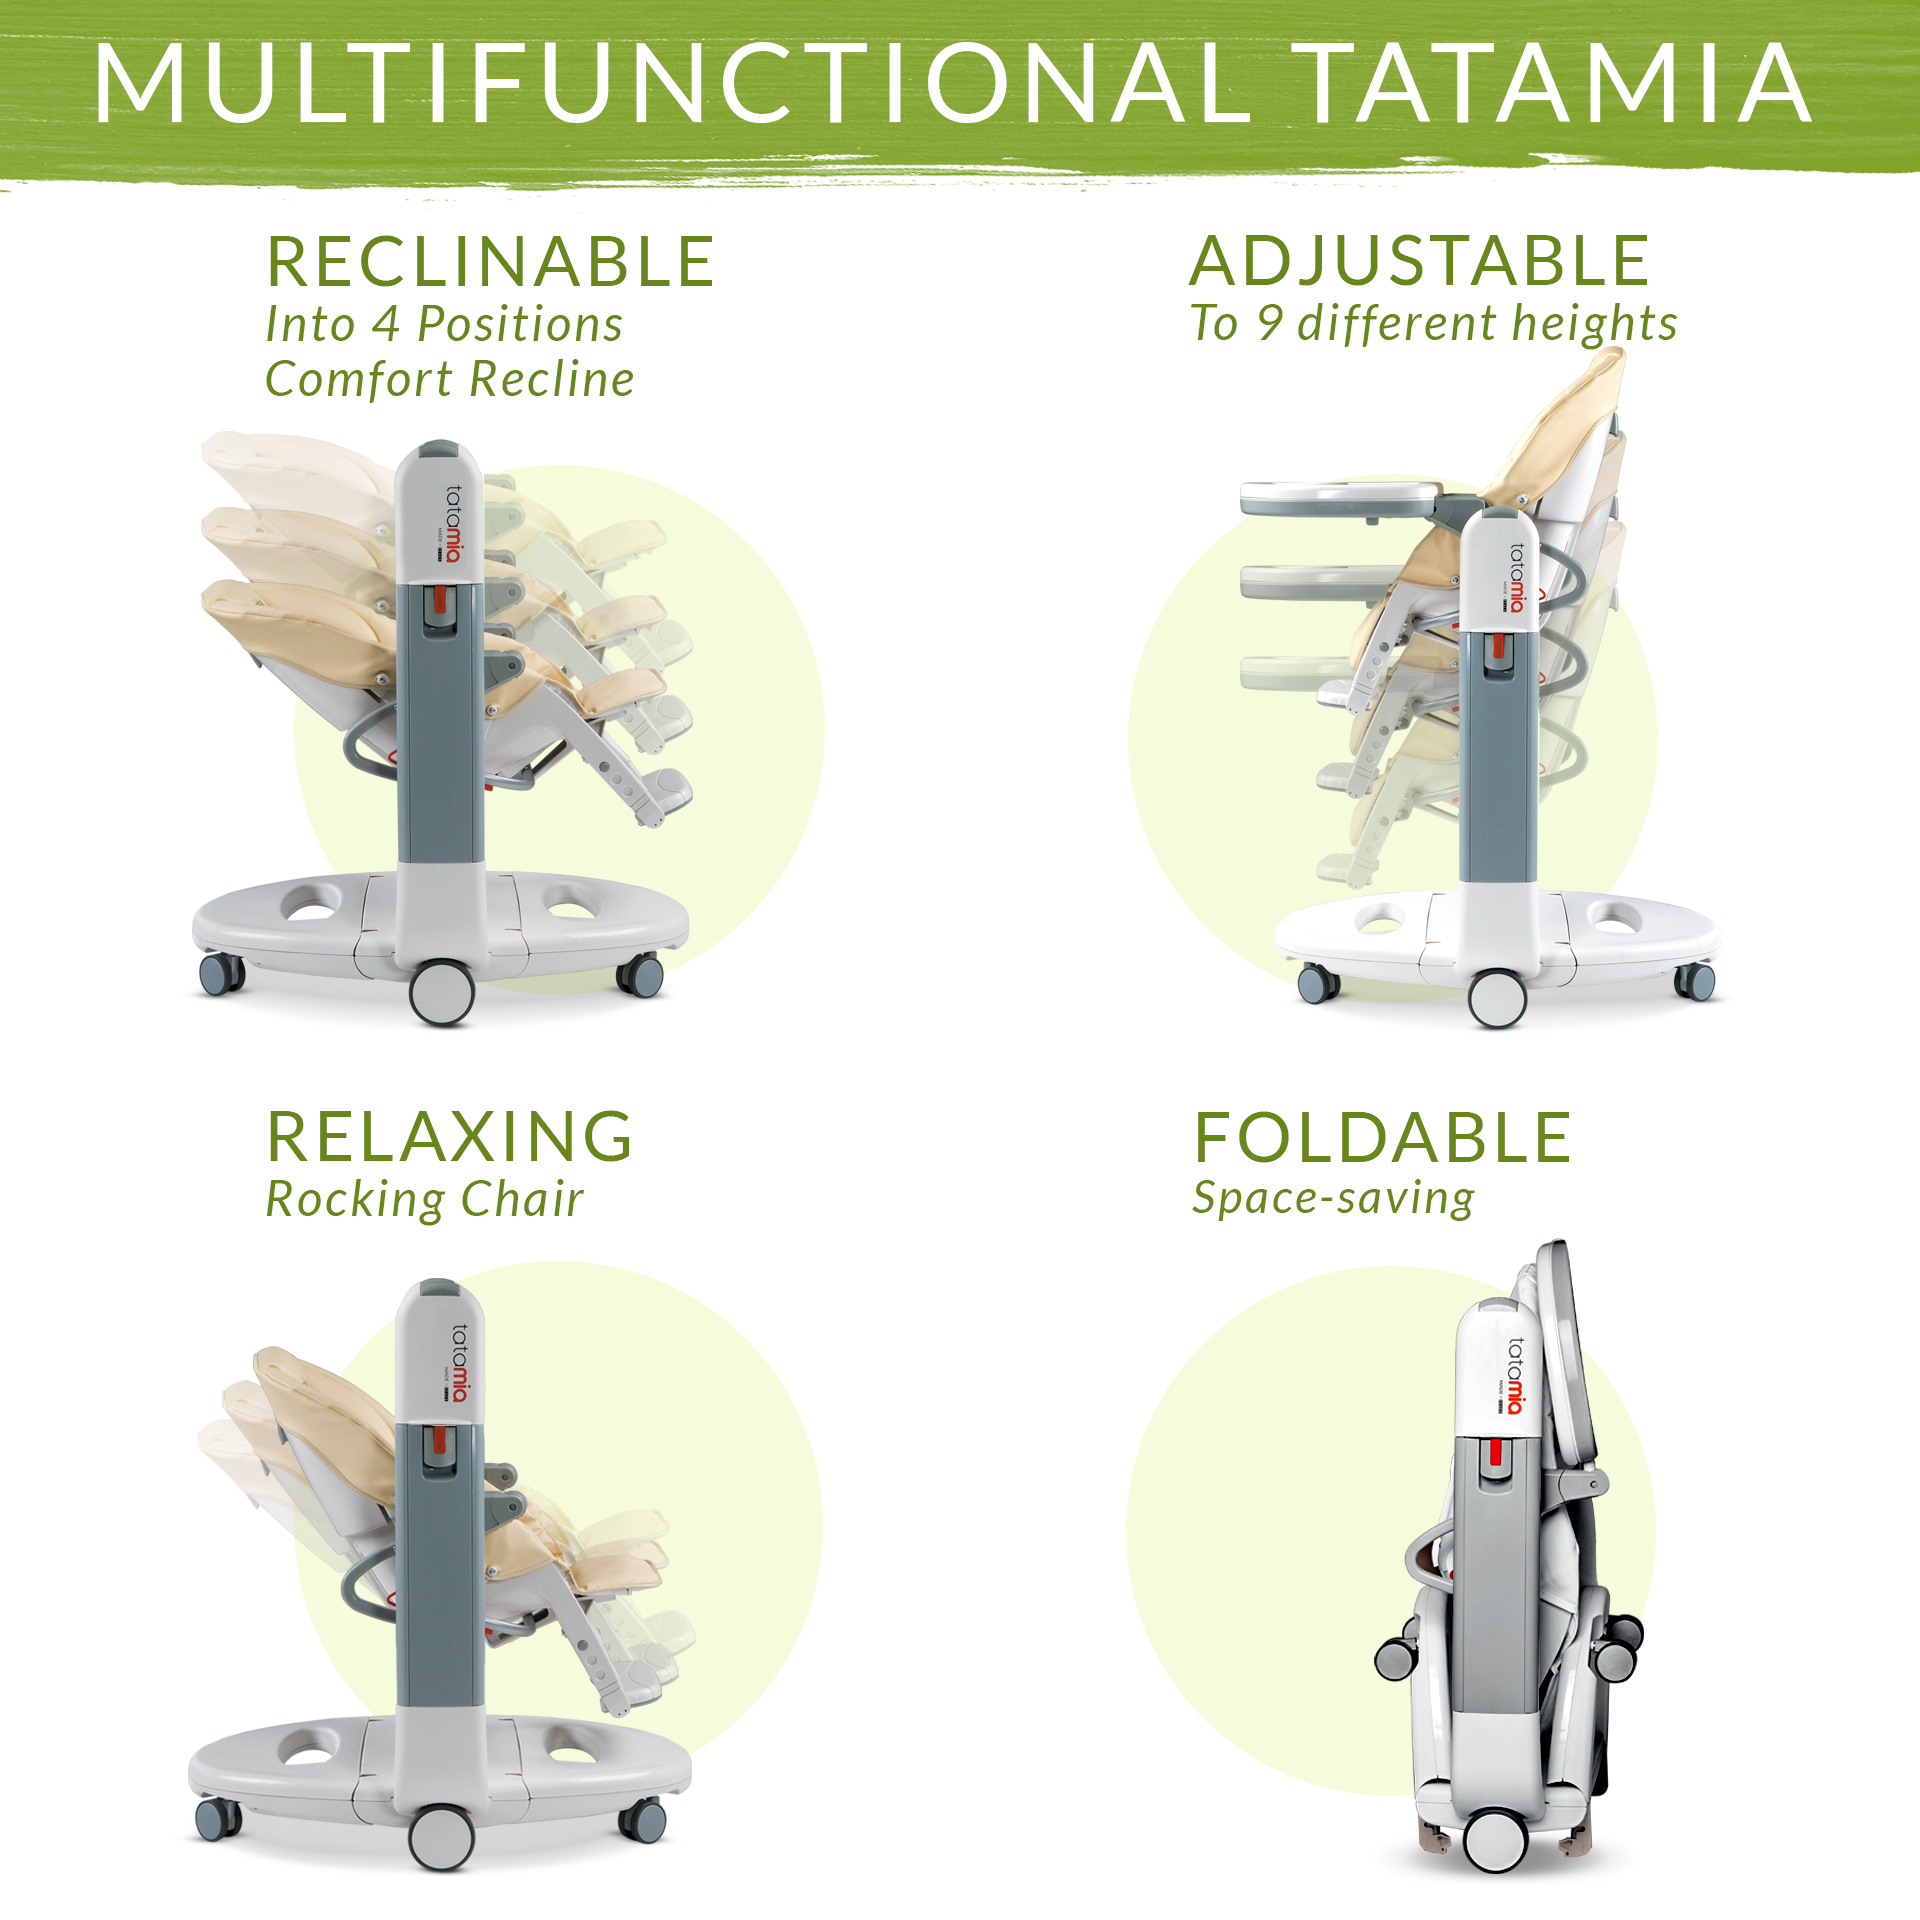 peg-perego-multifunctional-tatamia